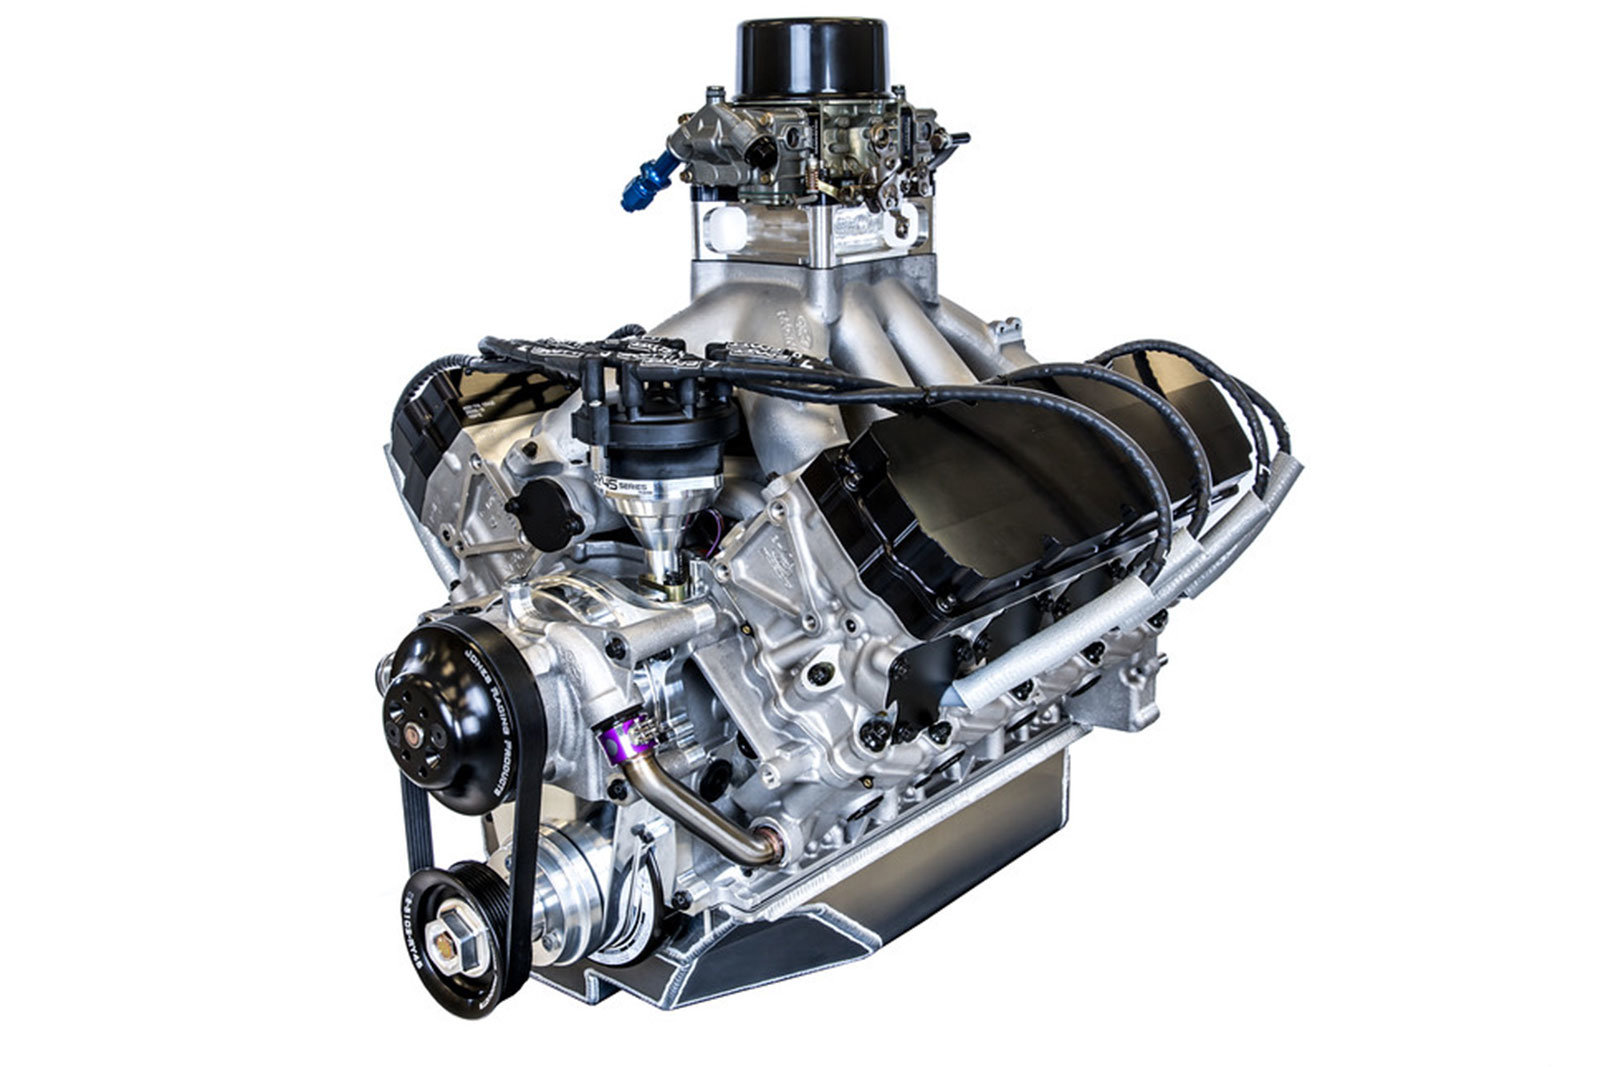 Gt350R For Sale >> Engines Archive | Roush Yates Engines